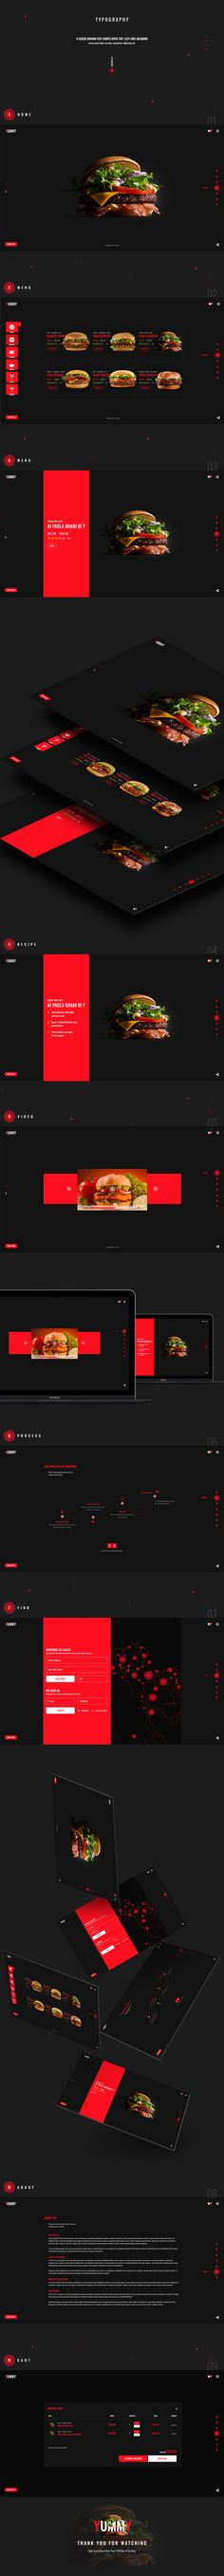 Yummy App - Restaurant Home Delivery on Behance